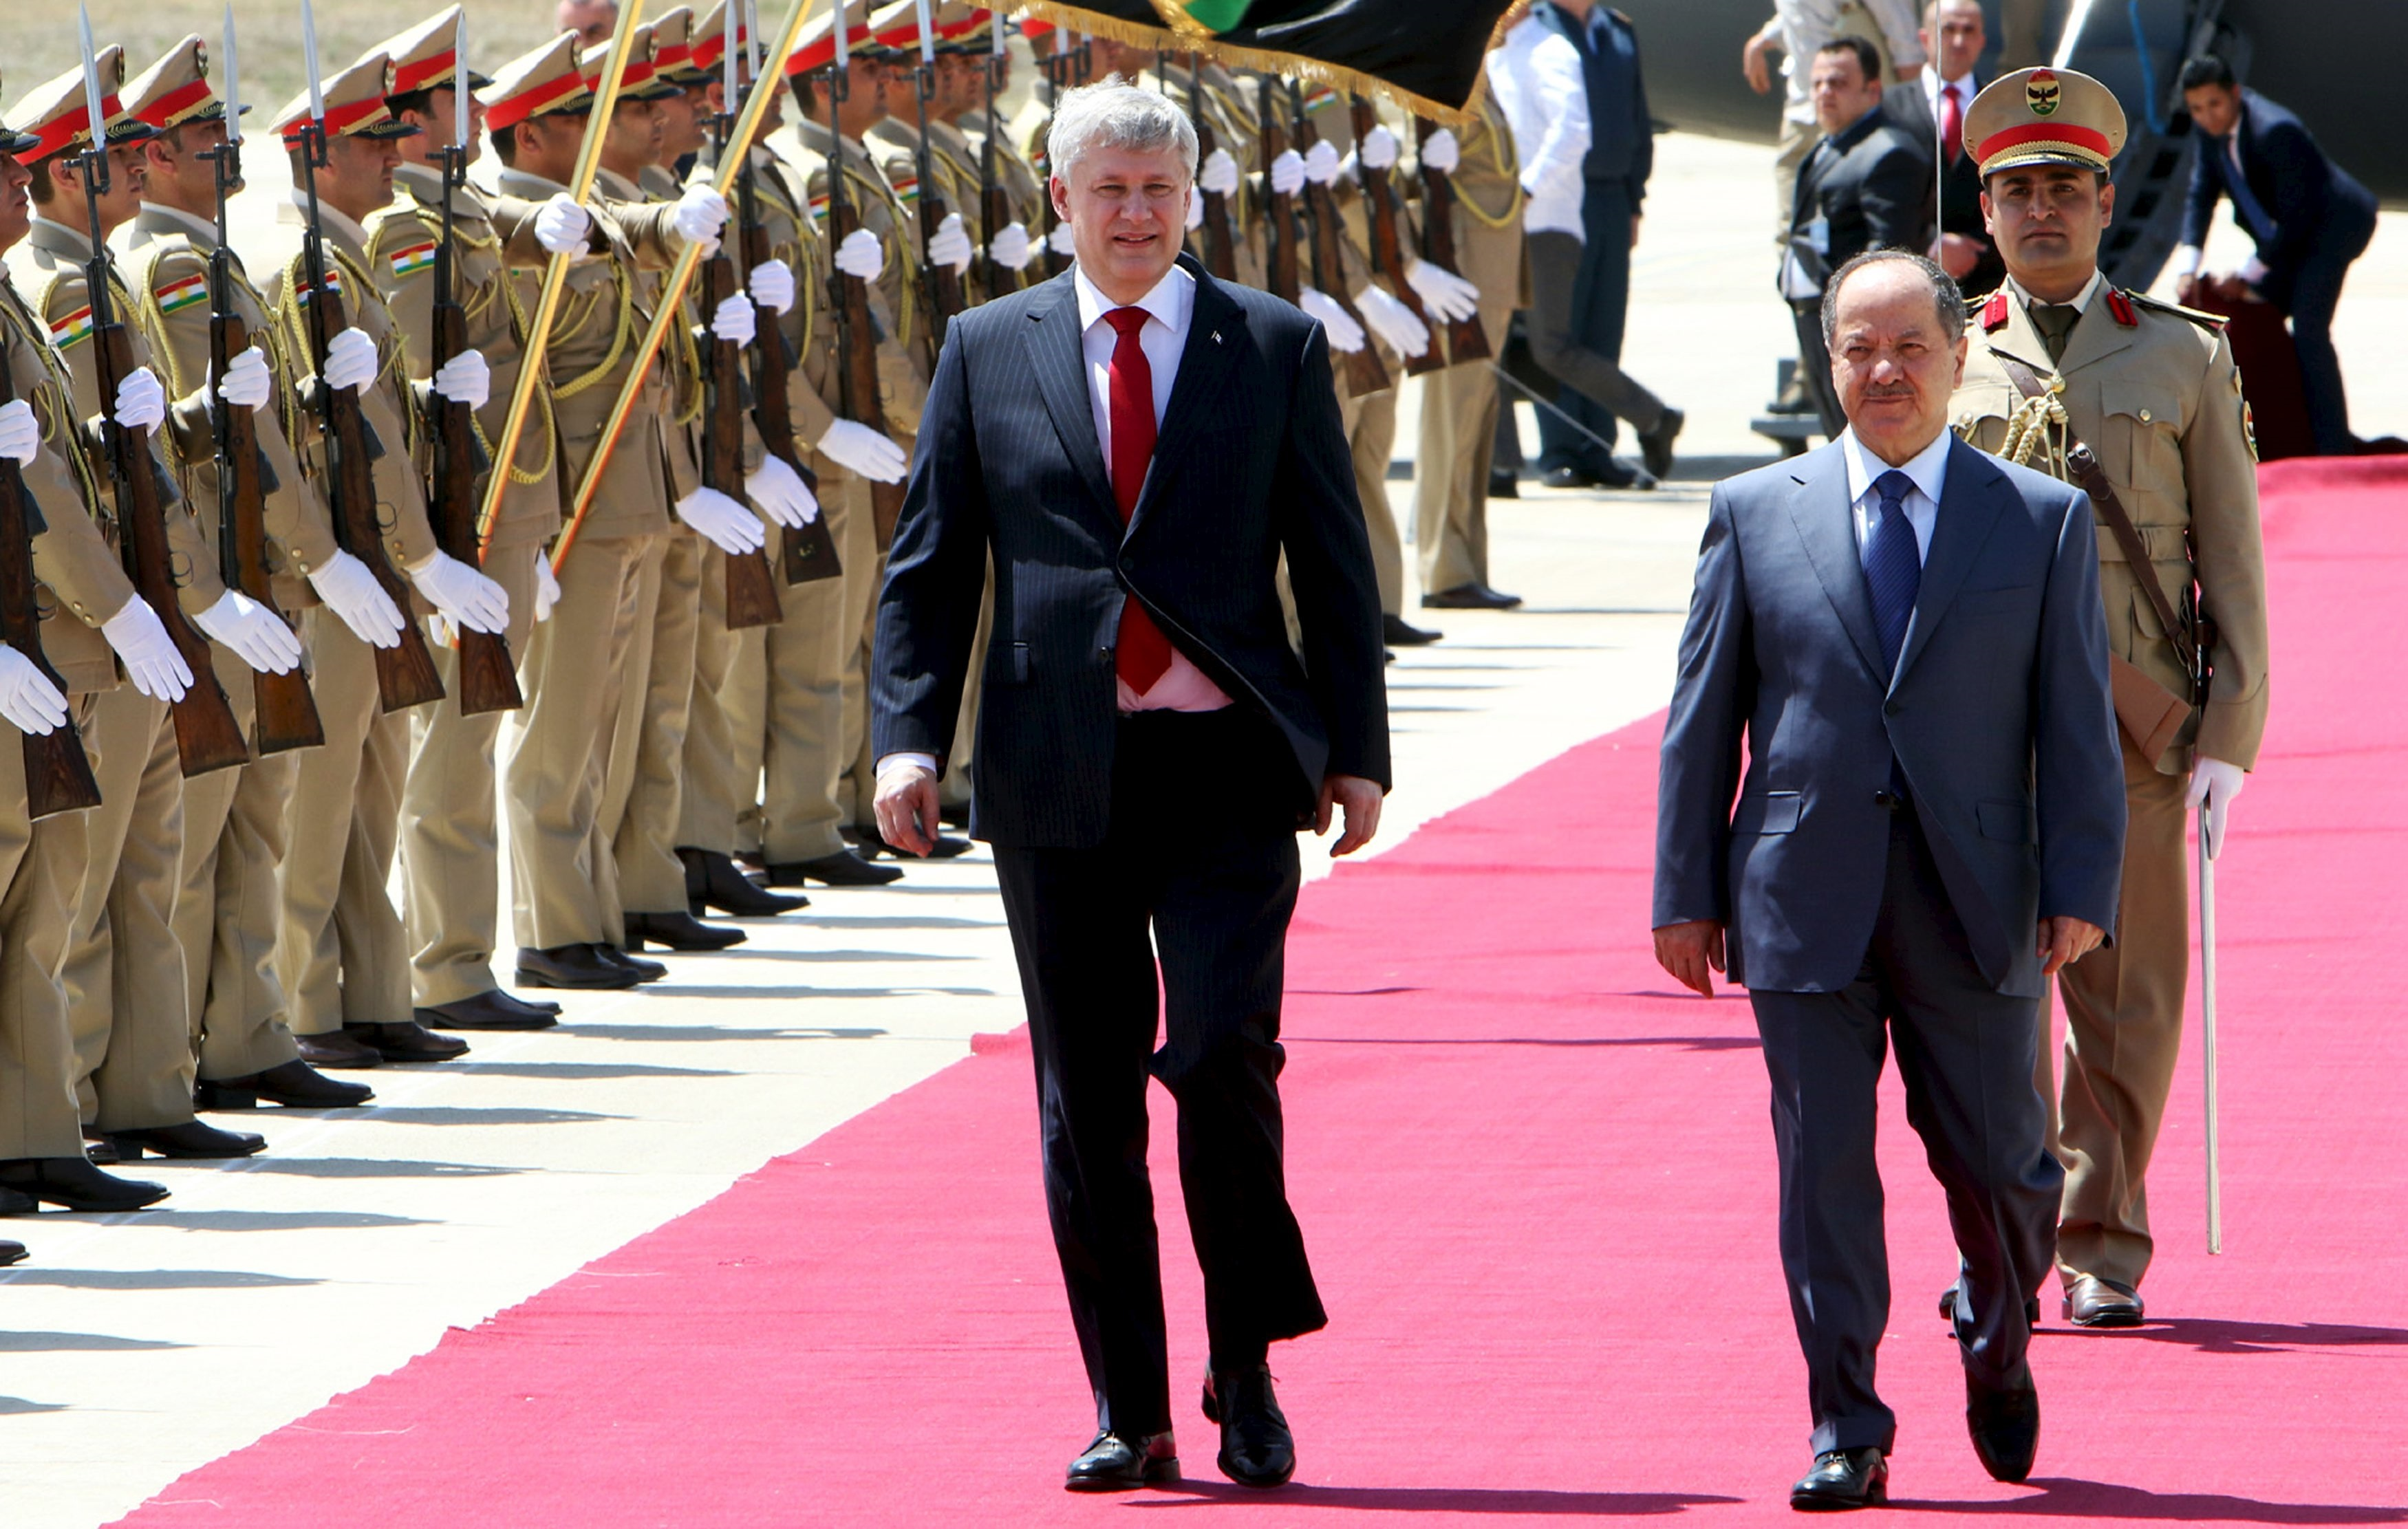 Canada's Prime Minister Harper and Iraq's Kurdish regional President Barzani walk during a welcoming ceremony after arriving at the airport in Erbil.